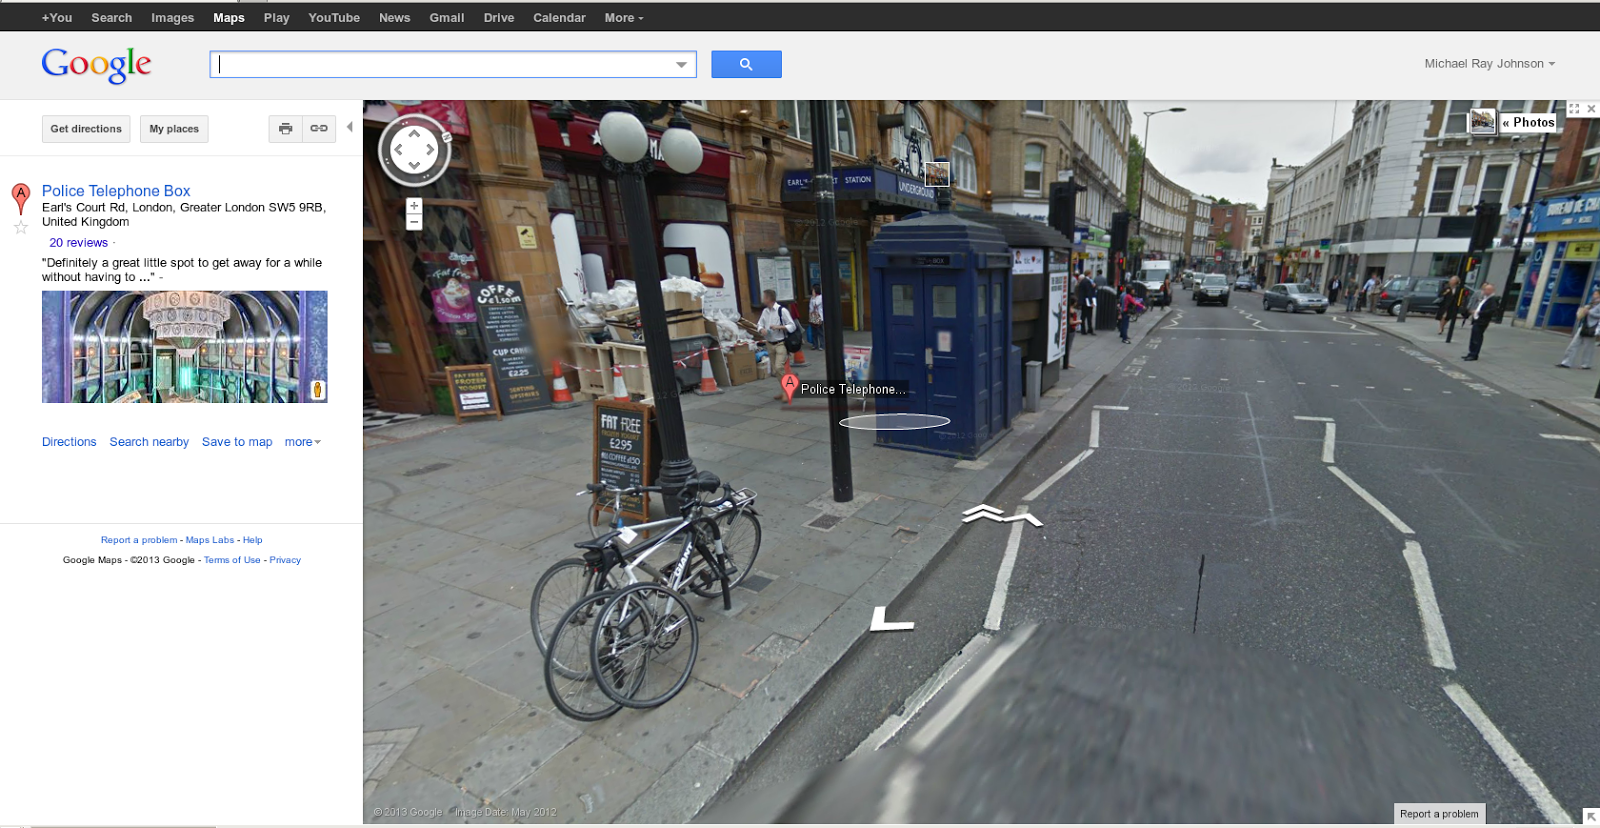 Of Dice and Pen: Doctor Who Easter Egg on Google Maps Dr Who Google Maps on